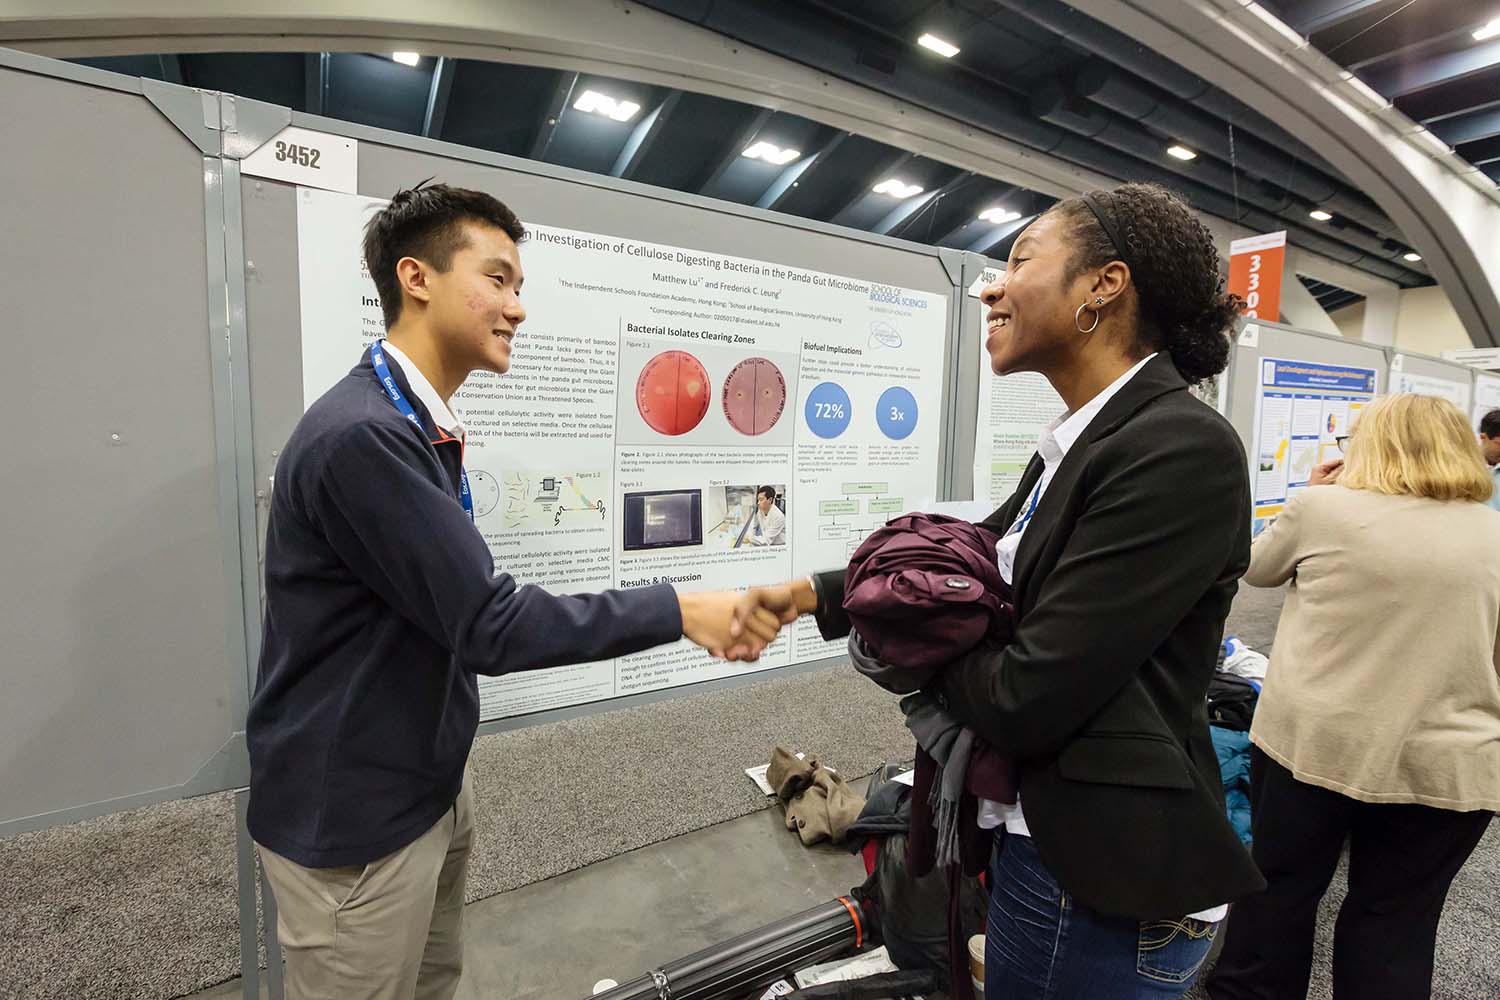 Two students shaking hands in poster hall